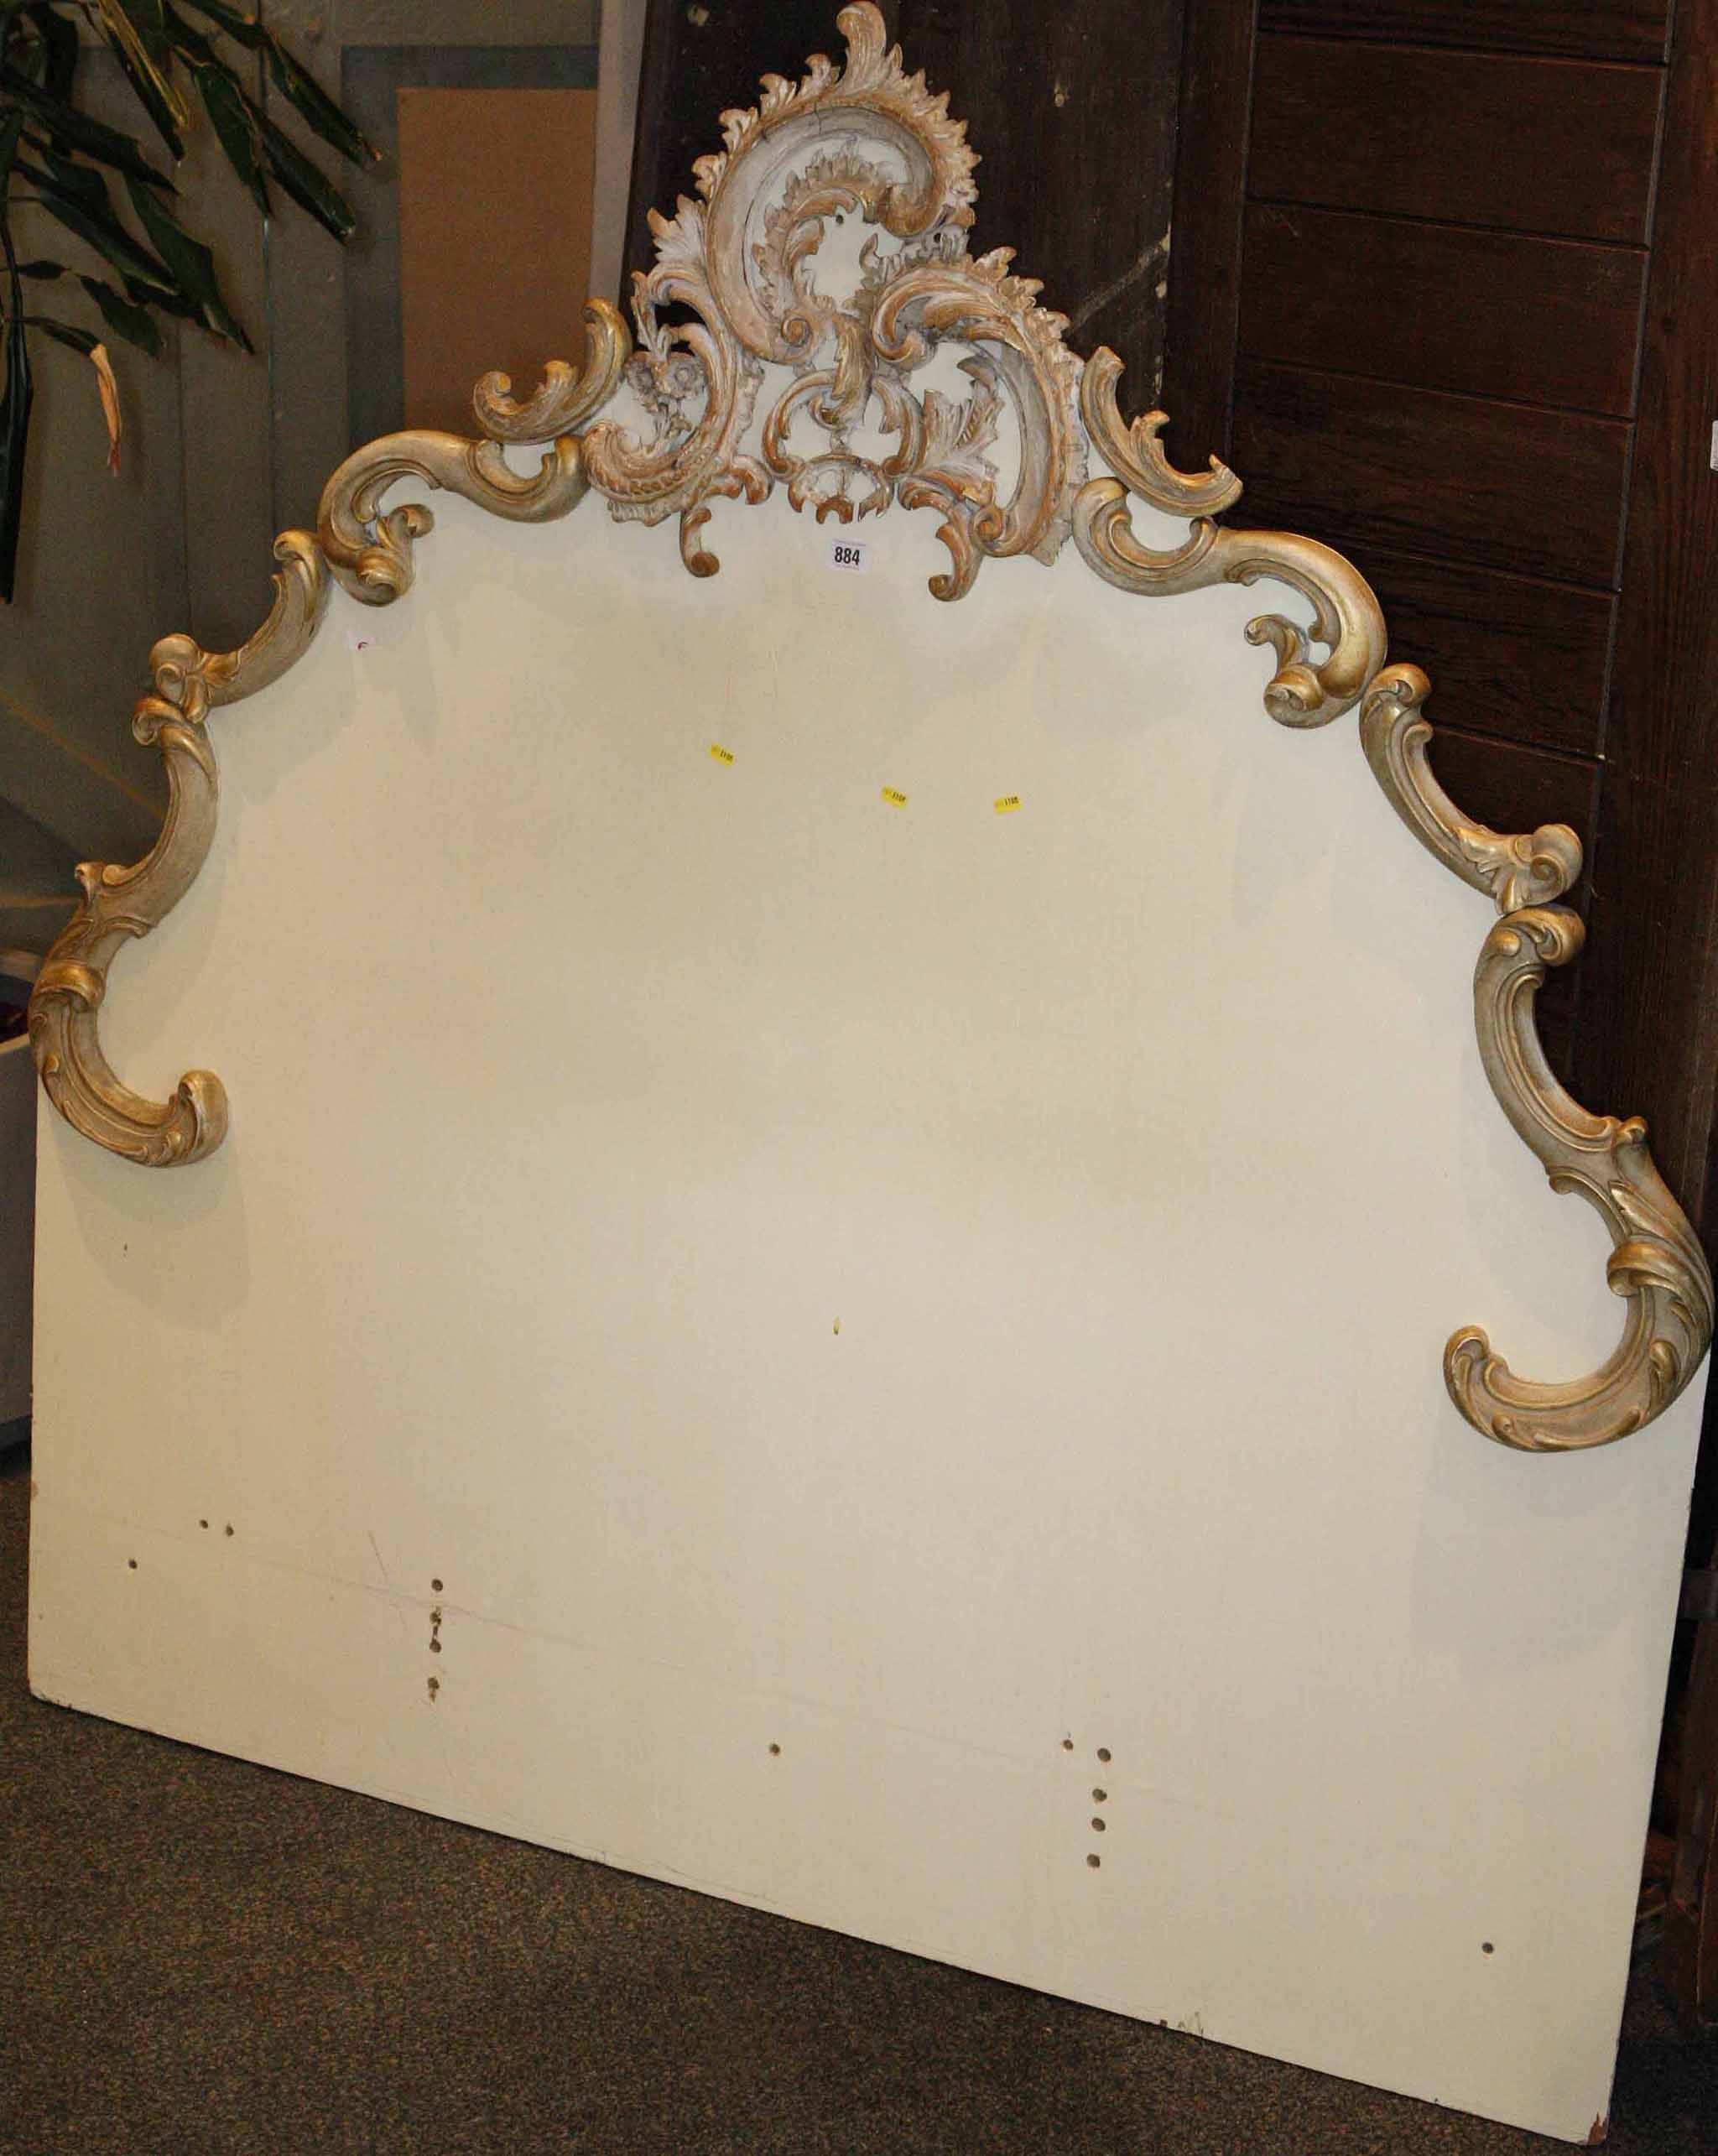 A cream painted and gilt single bed head board with carved rococo